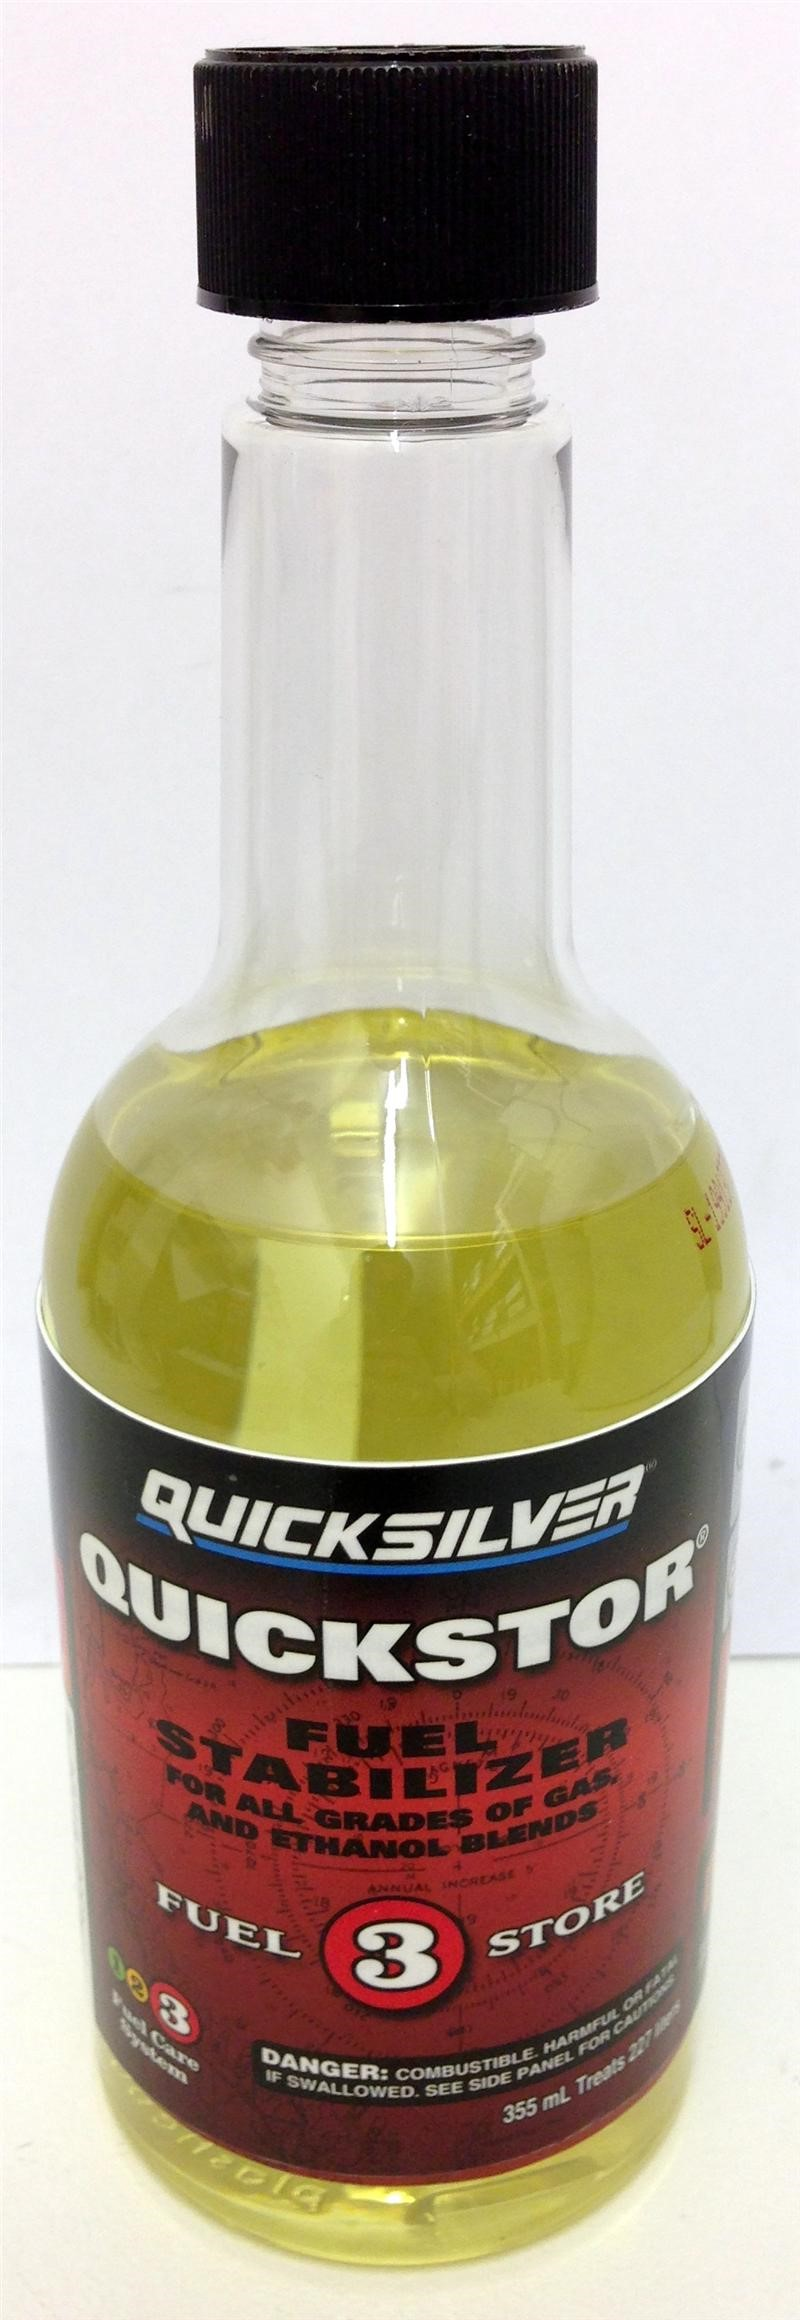 Quicksilver Quickstor Fuel Stabilizer 92 8m0079745 355ml